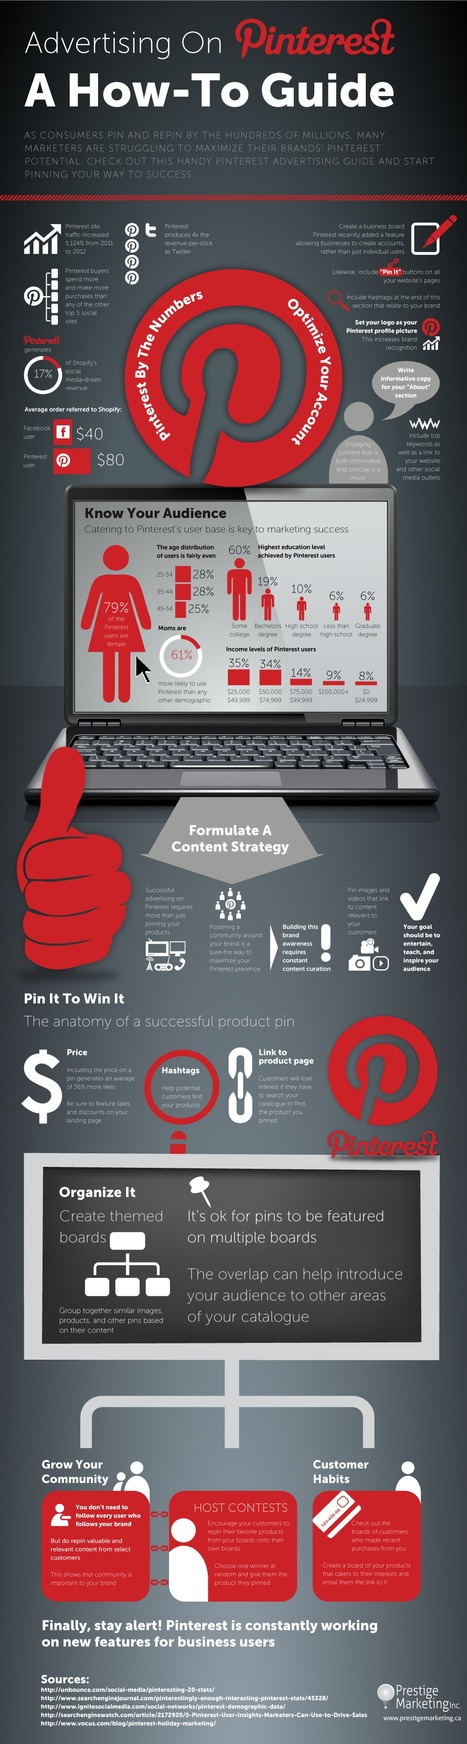 A Marketer's Guide To Pinterest - Infographic | Enterprise Social Media | Scoop.it